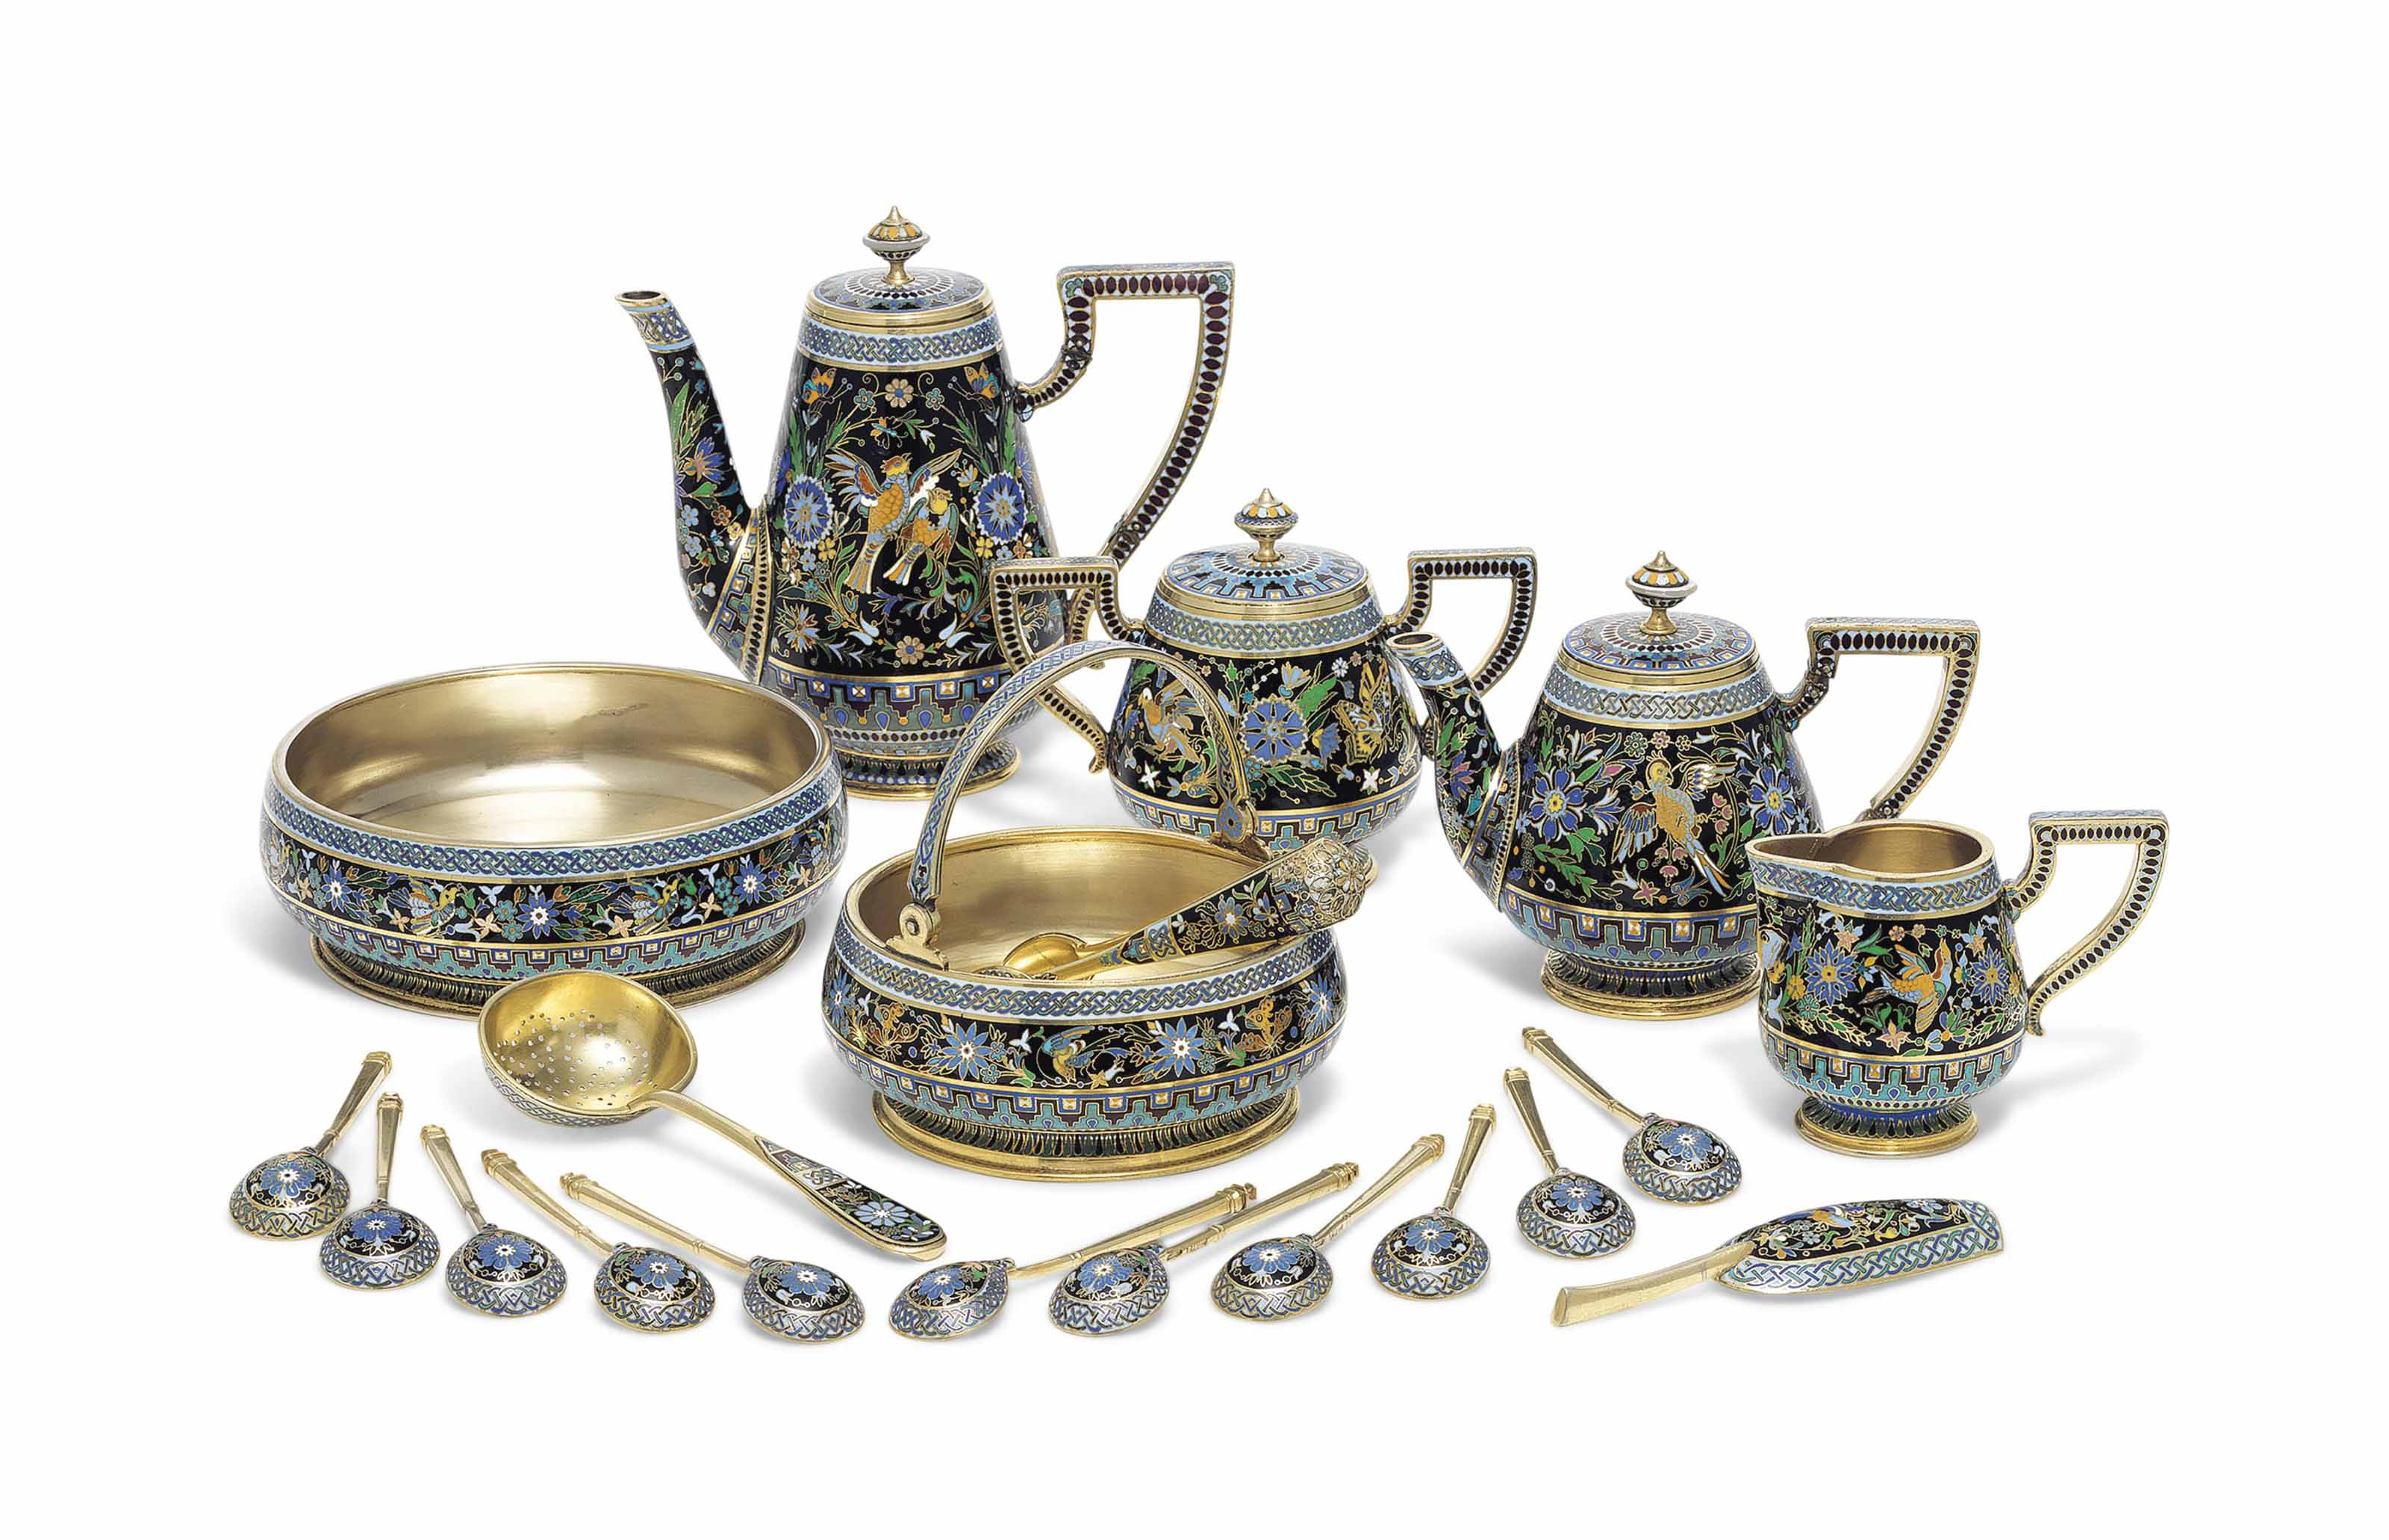 A SILVER-GILT AND CHAMPLEVÉ ENAMEL COFFEE AND TEA-SERVICE